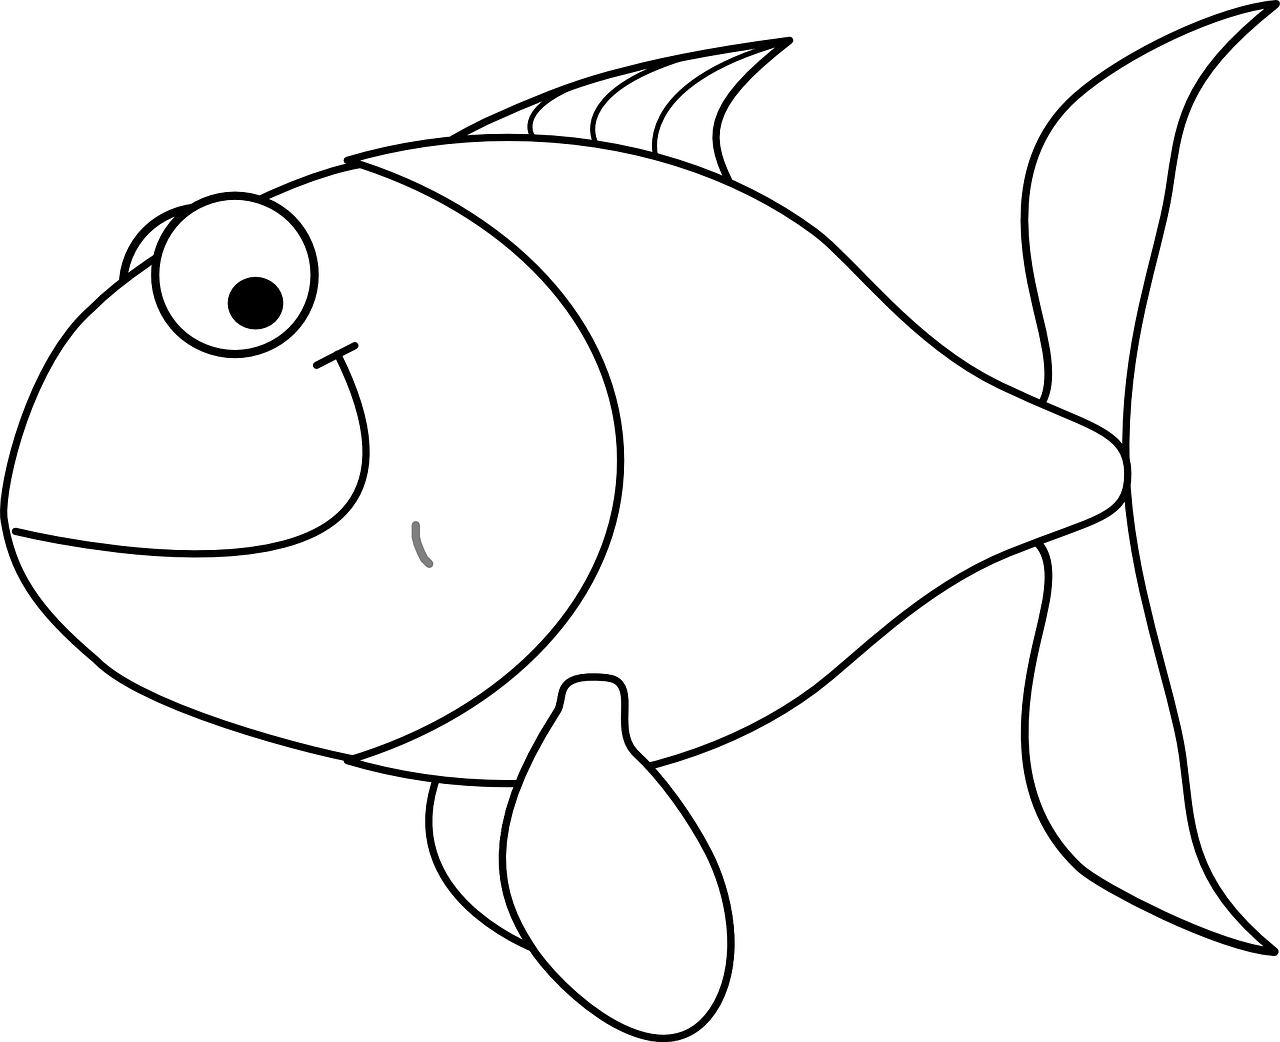 coloring cartoon png fish coloring pages for kids 14 pics how to draw in 1 coloring png cartoon